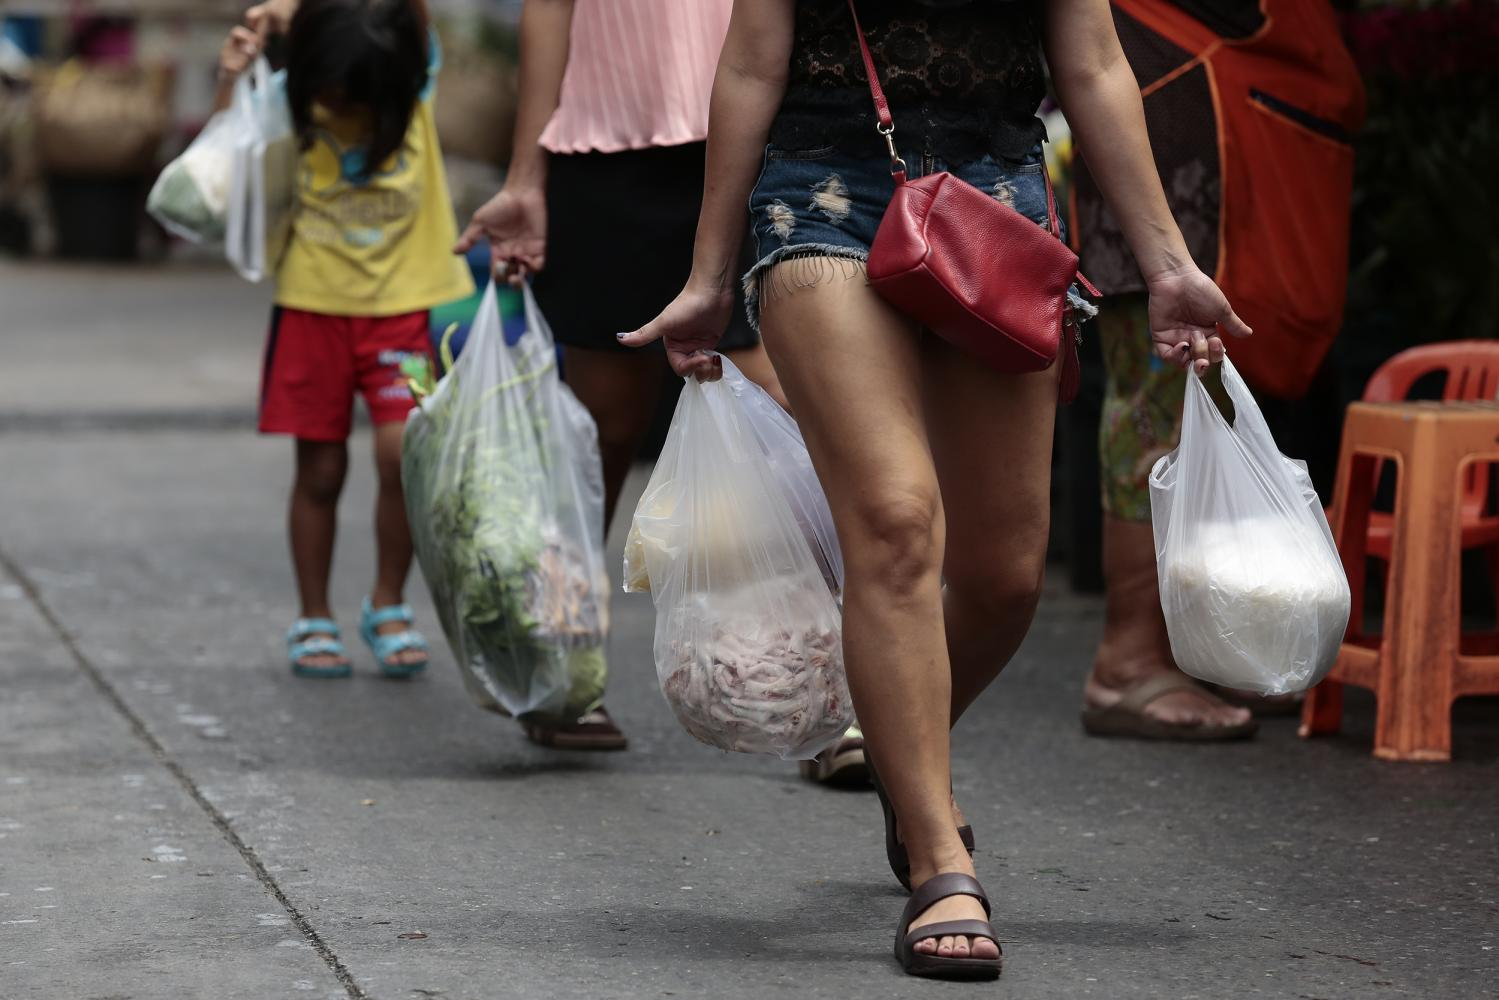 A shopper heads home with plastic bags.Patipat Janthong